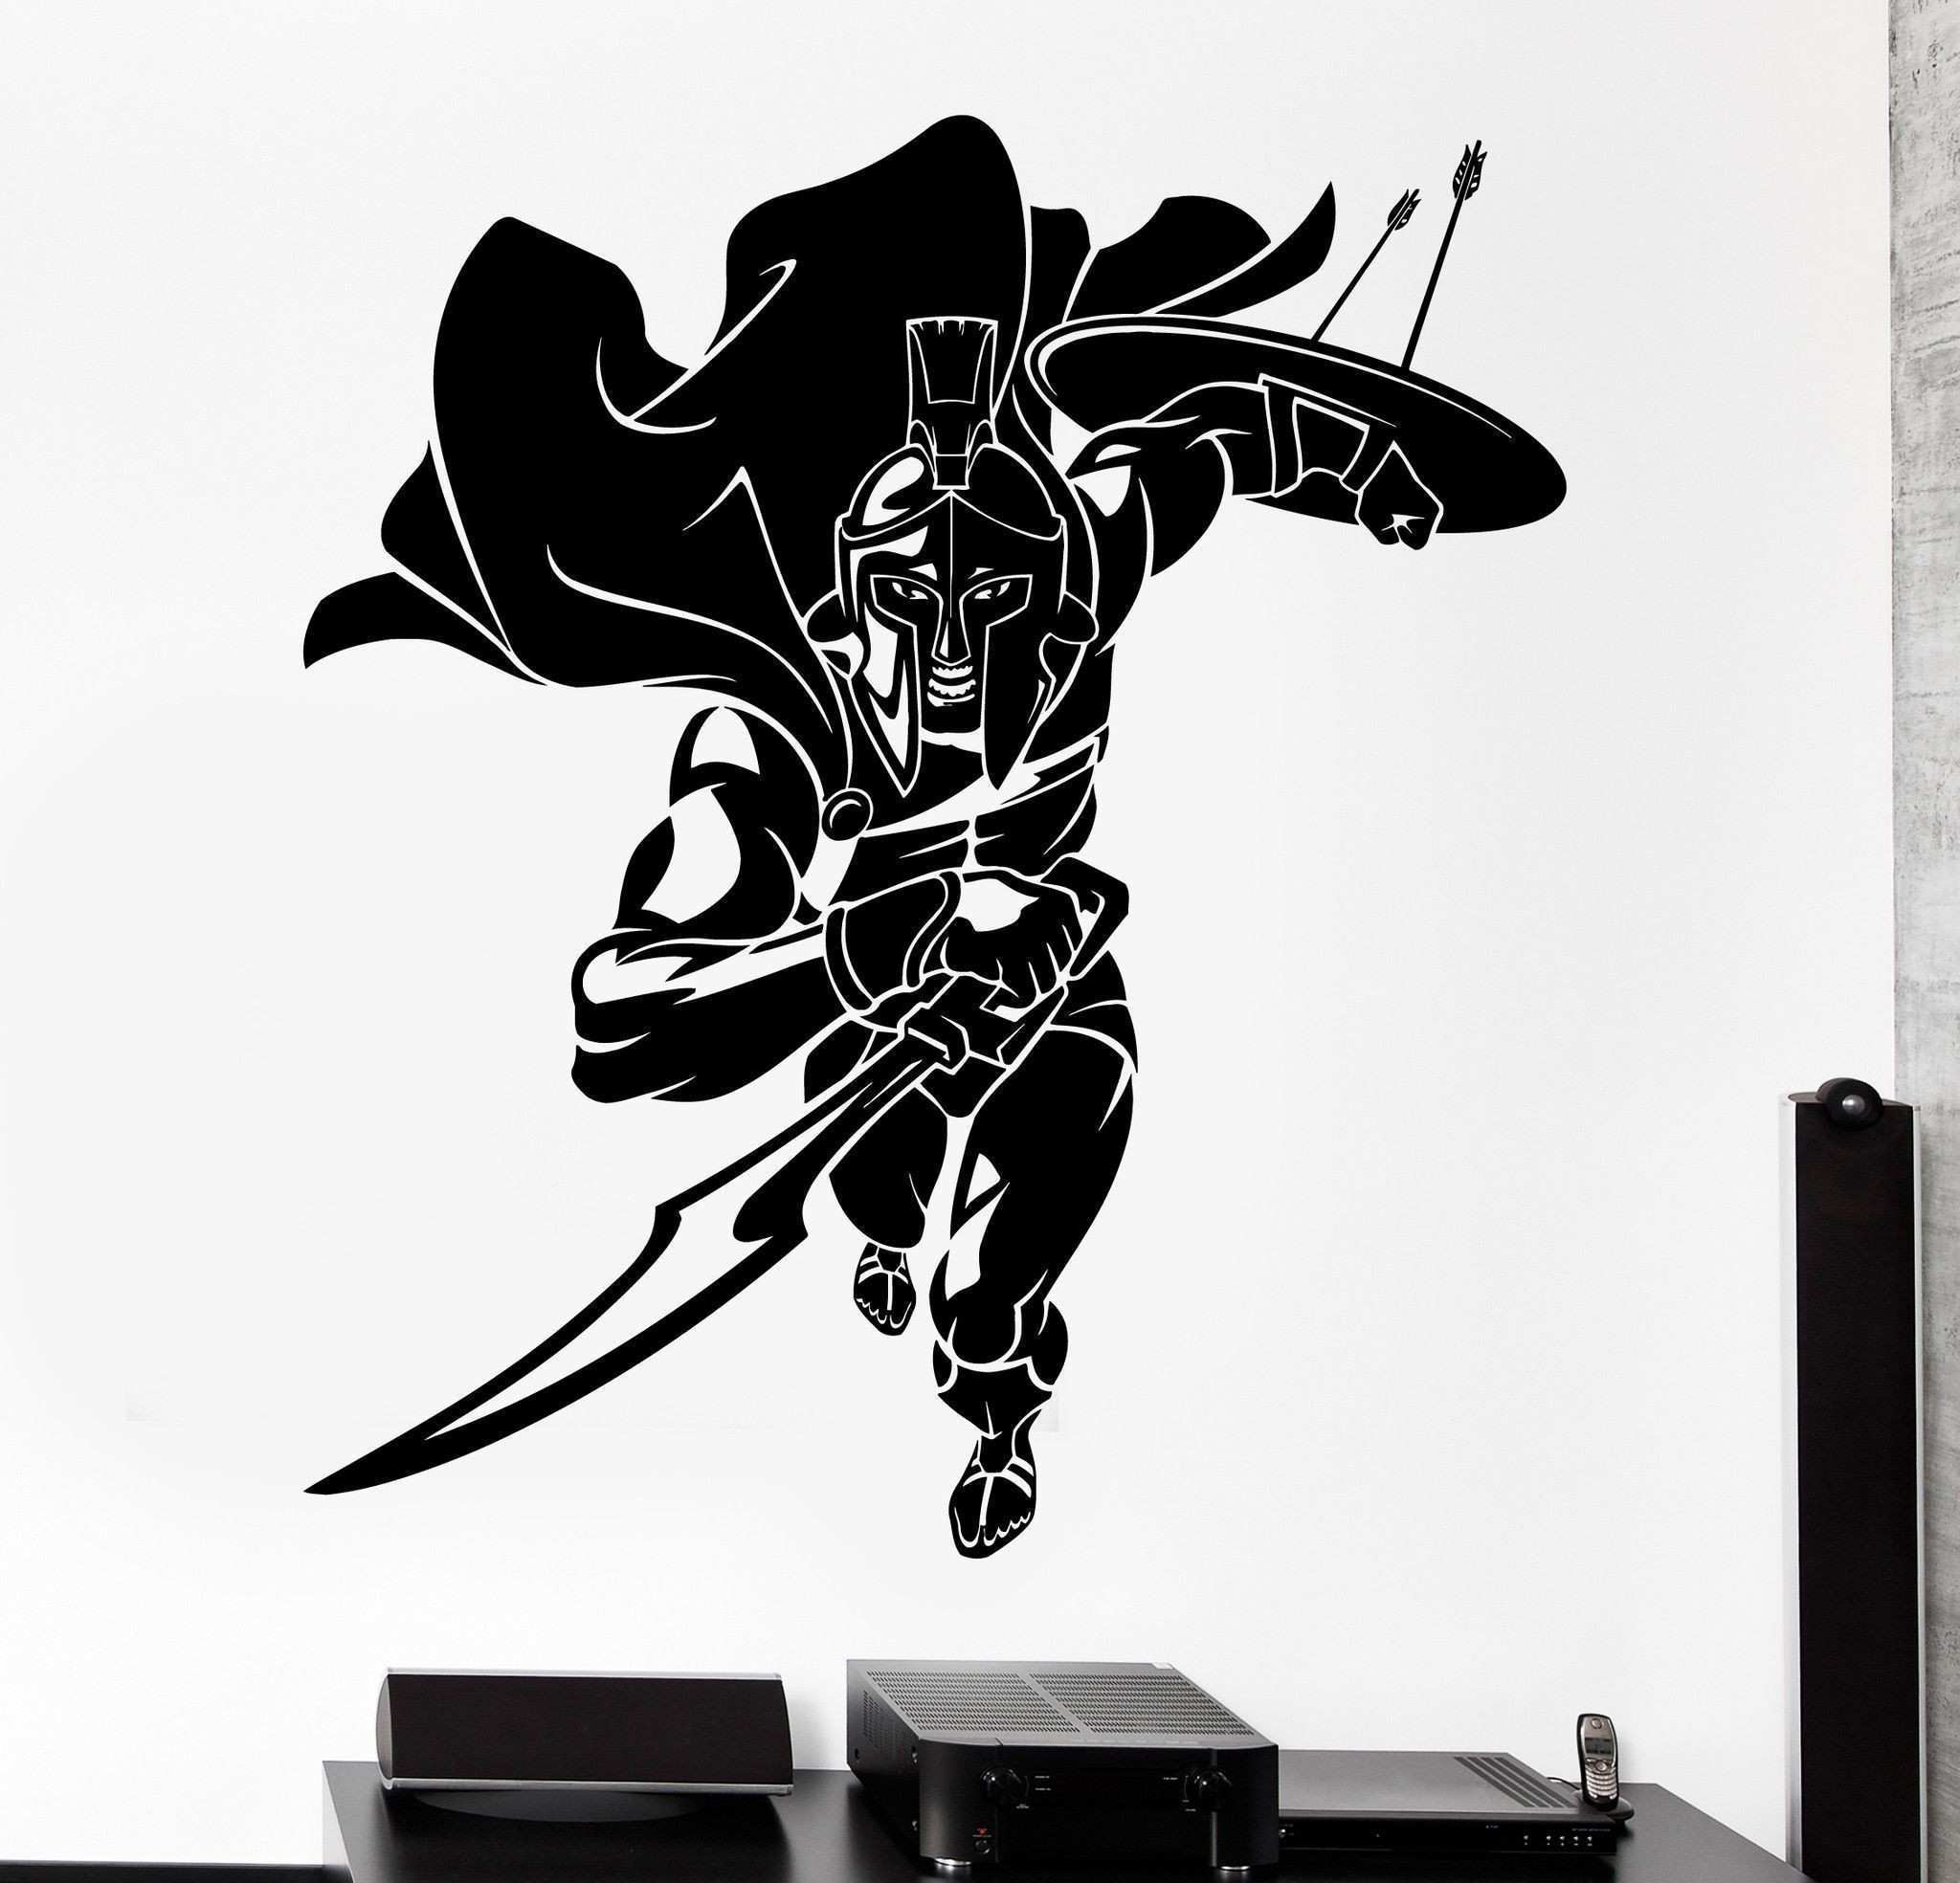 Wall Vinyl Decal Sparta Spartan Warrior Sol r Fighting Home